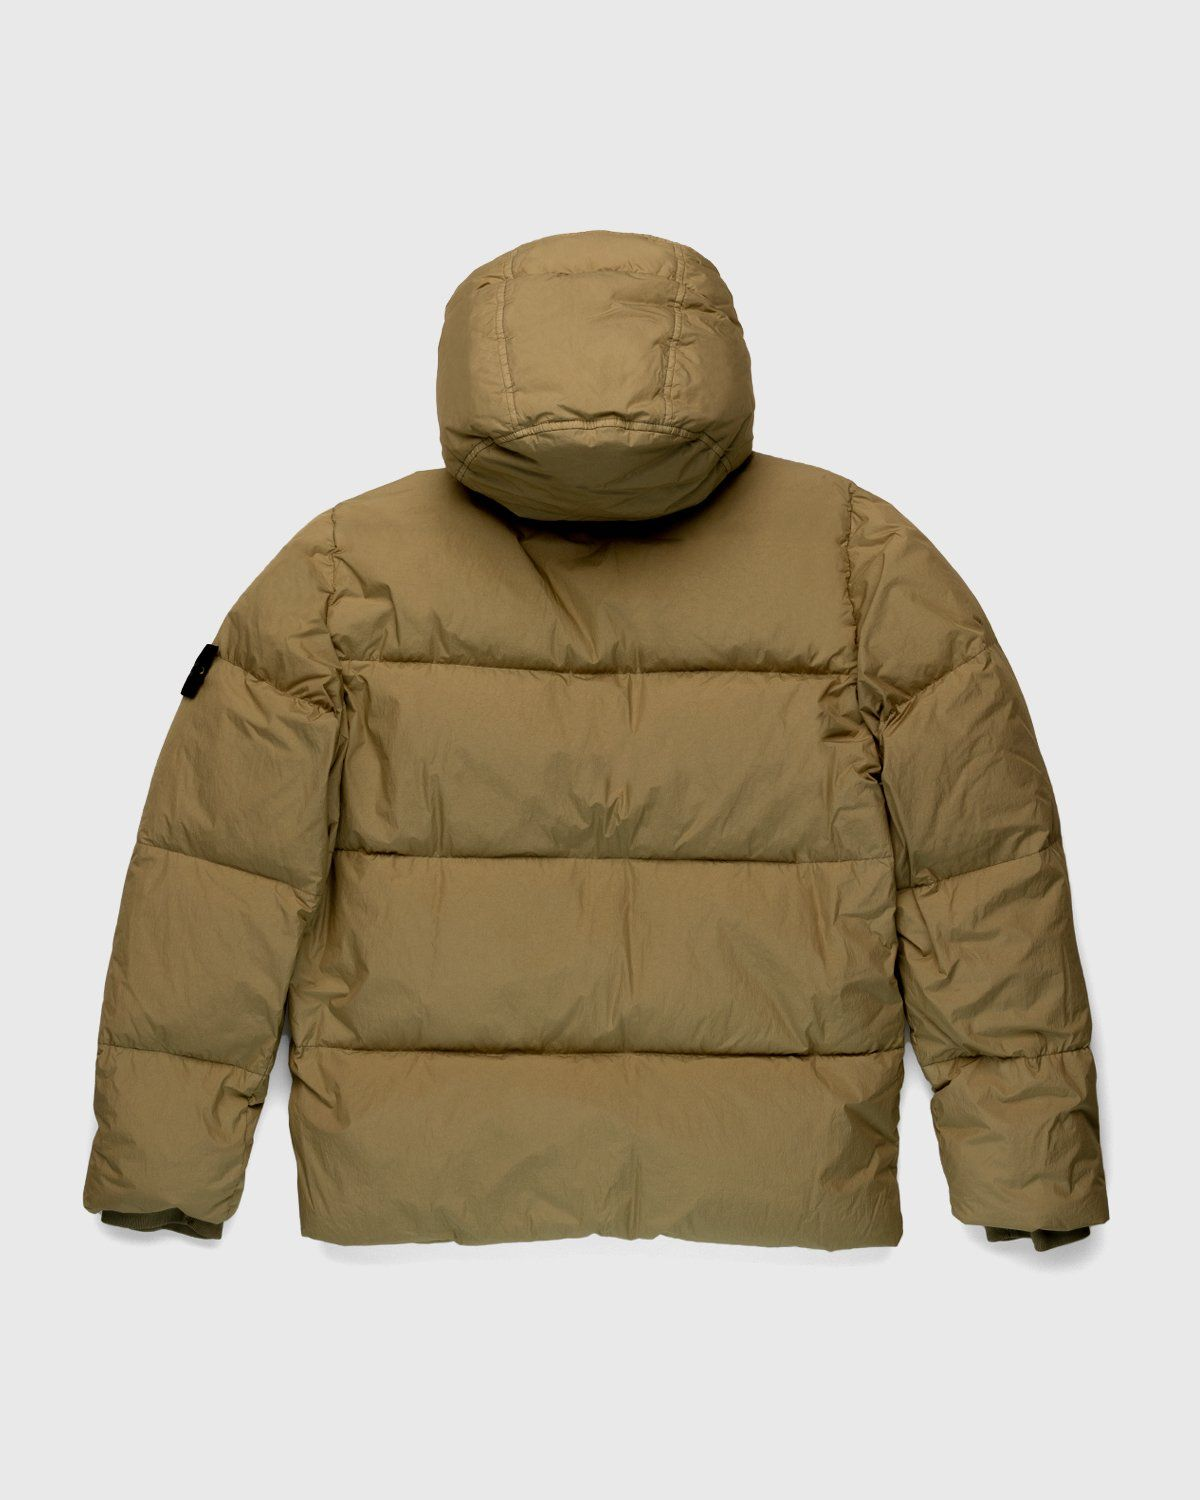 Stone Island – Real Down Jacket Natural Beige - Image 2